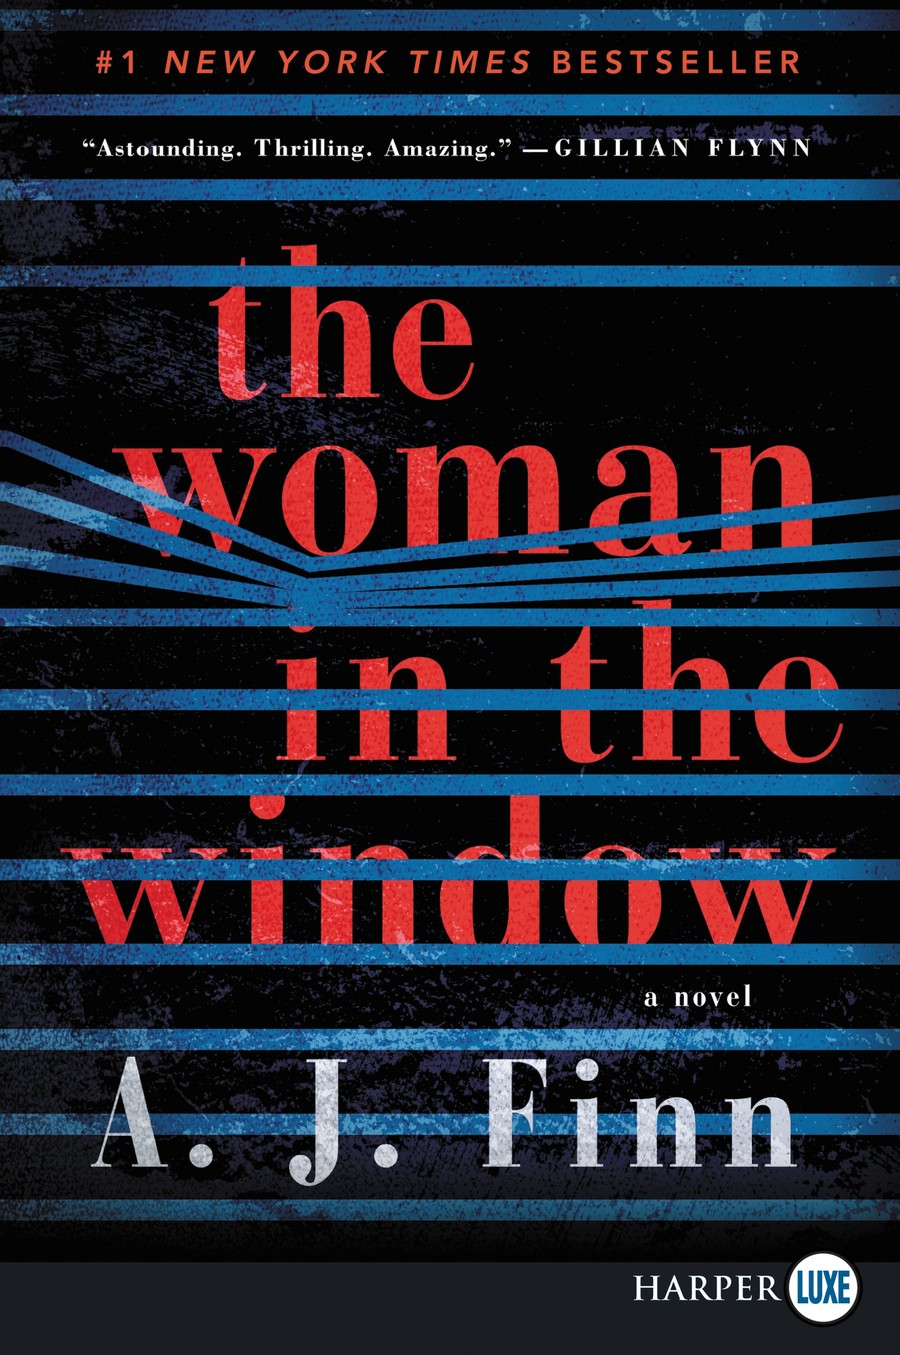 The cover of The Woman in the Window by A.J. Finn shows the text peeking through window blinds